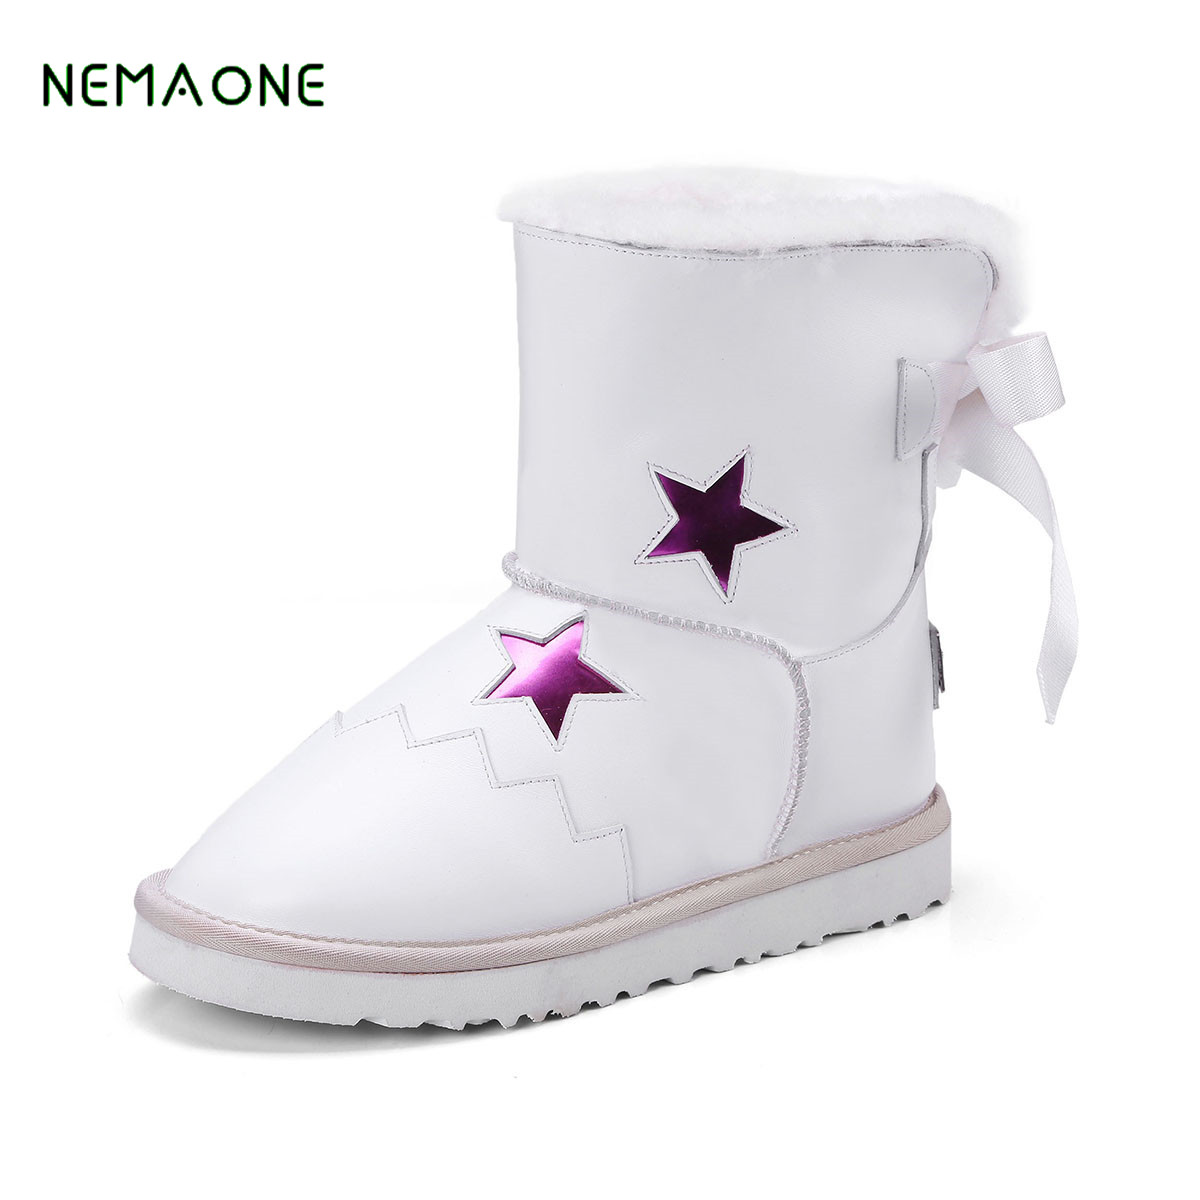 NEMAONE NEW Casual Snow Boots Women Fashion Waterproof Shoes 2017 Winter Leather High Keep Warm Plush Free Shipping Quality